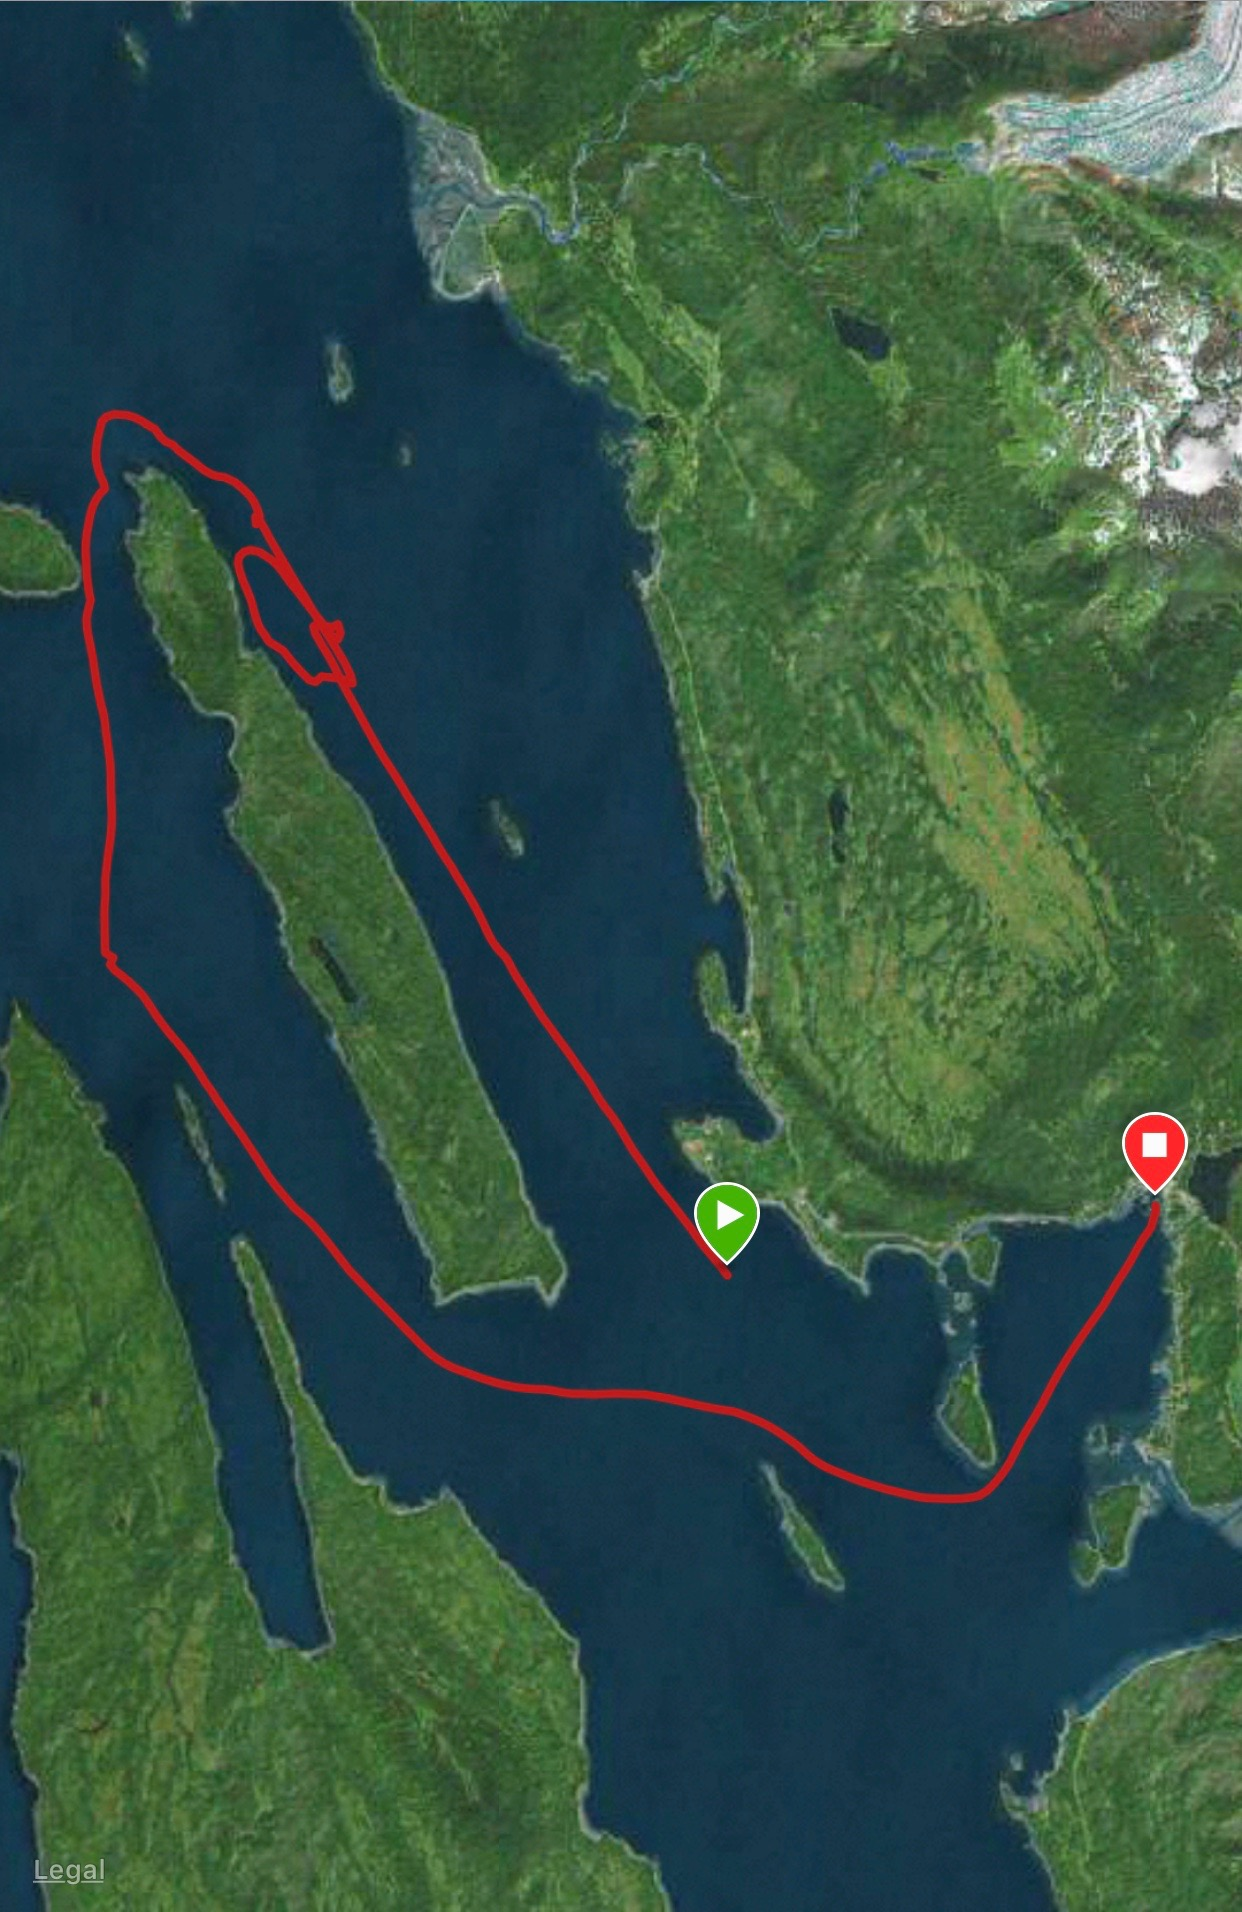 The GPS trail of where we went on our whale watching wxcursion.